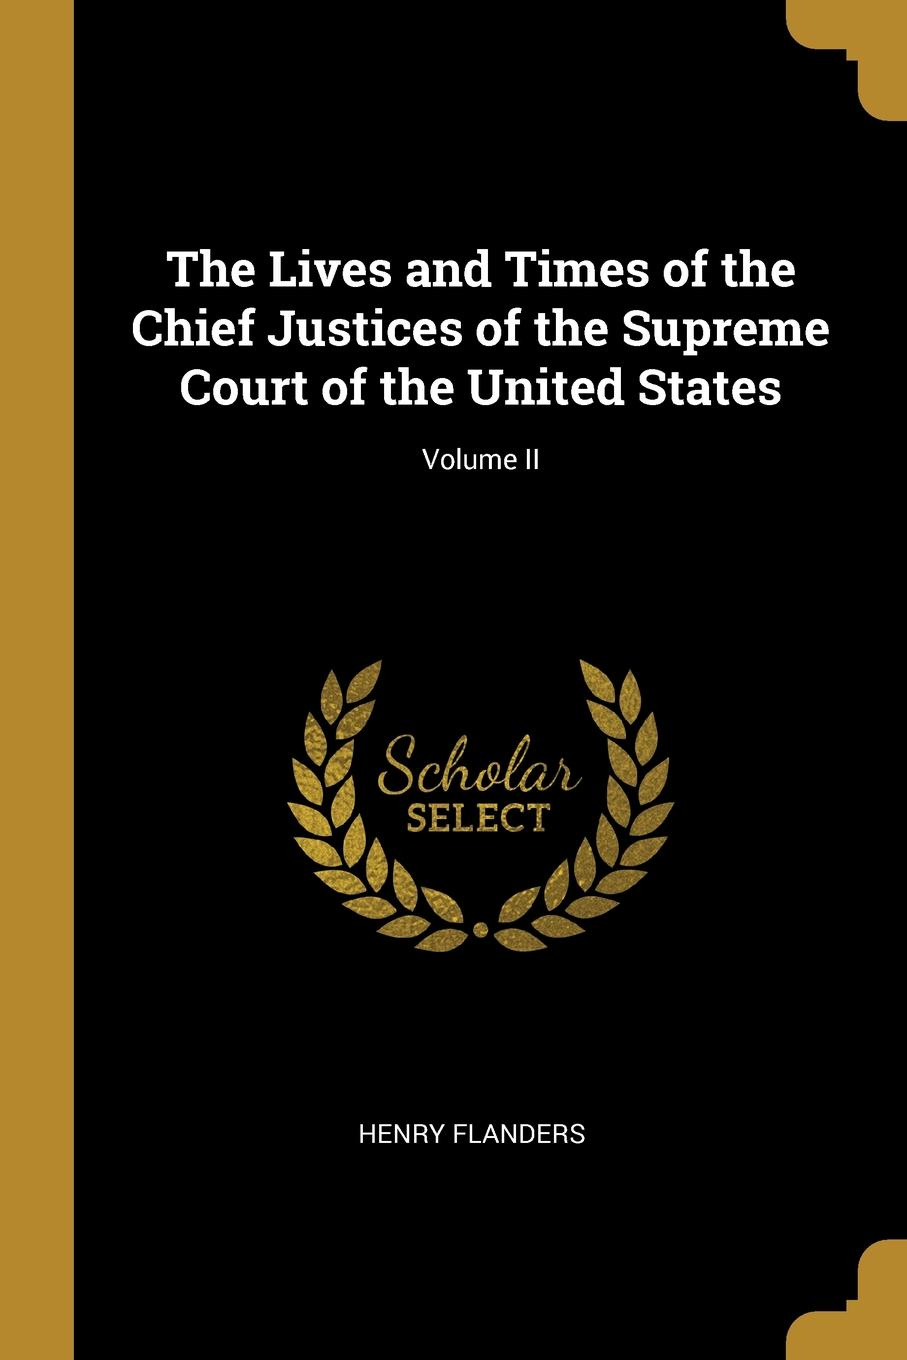 Henry Flanders The Lives and Times of the Chief Justices of the Supreme Court of the United States; Volume II henry flanders the lives and times of the chief justices of the supreme court of the united states volume 2